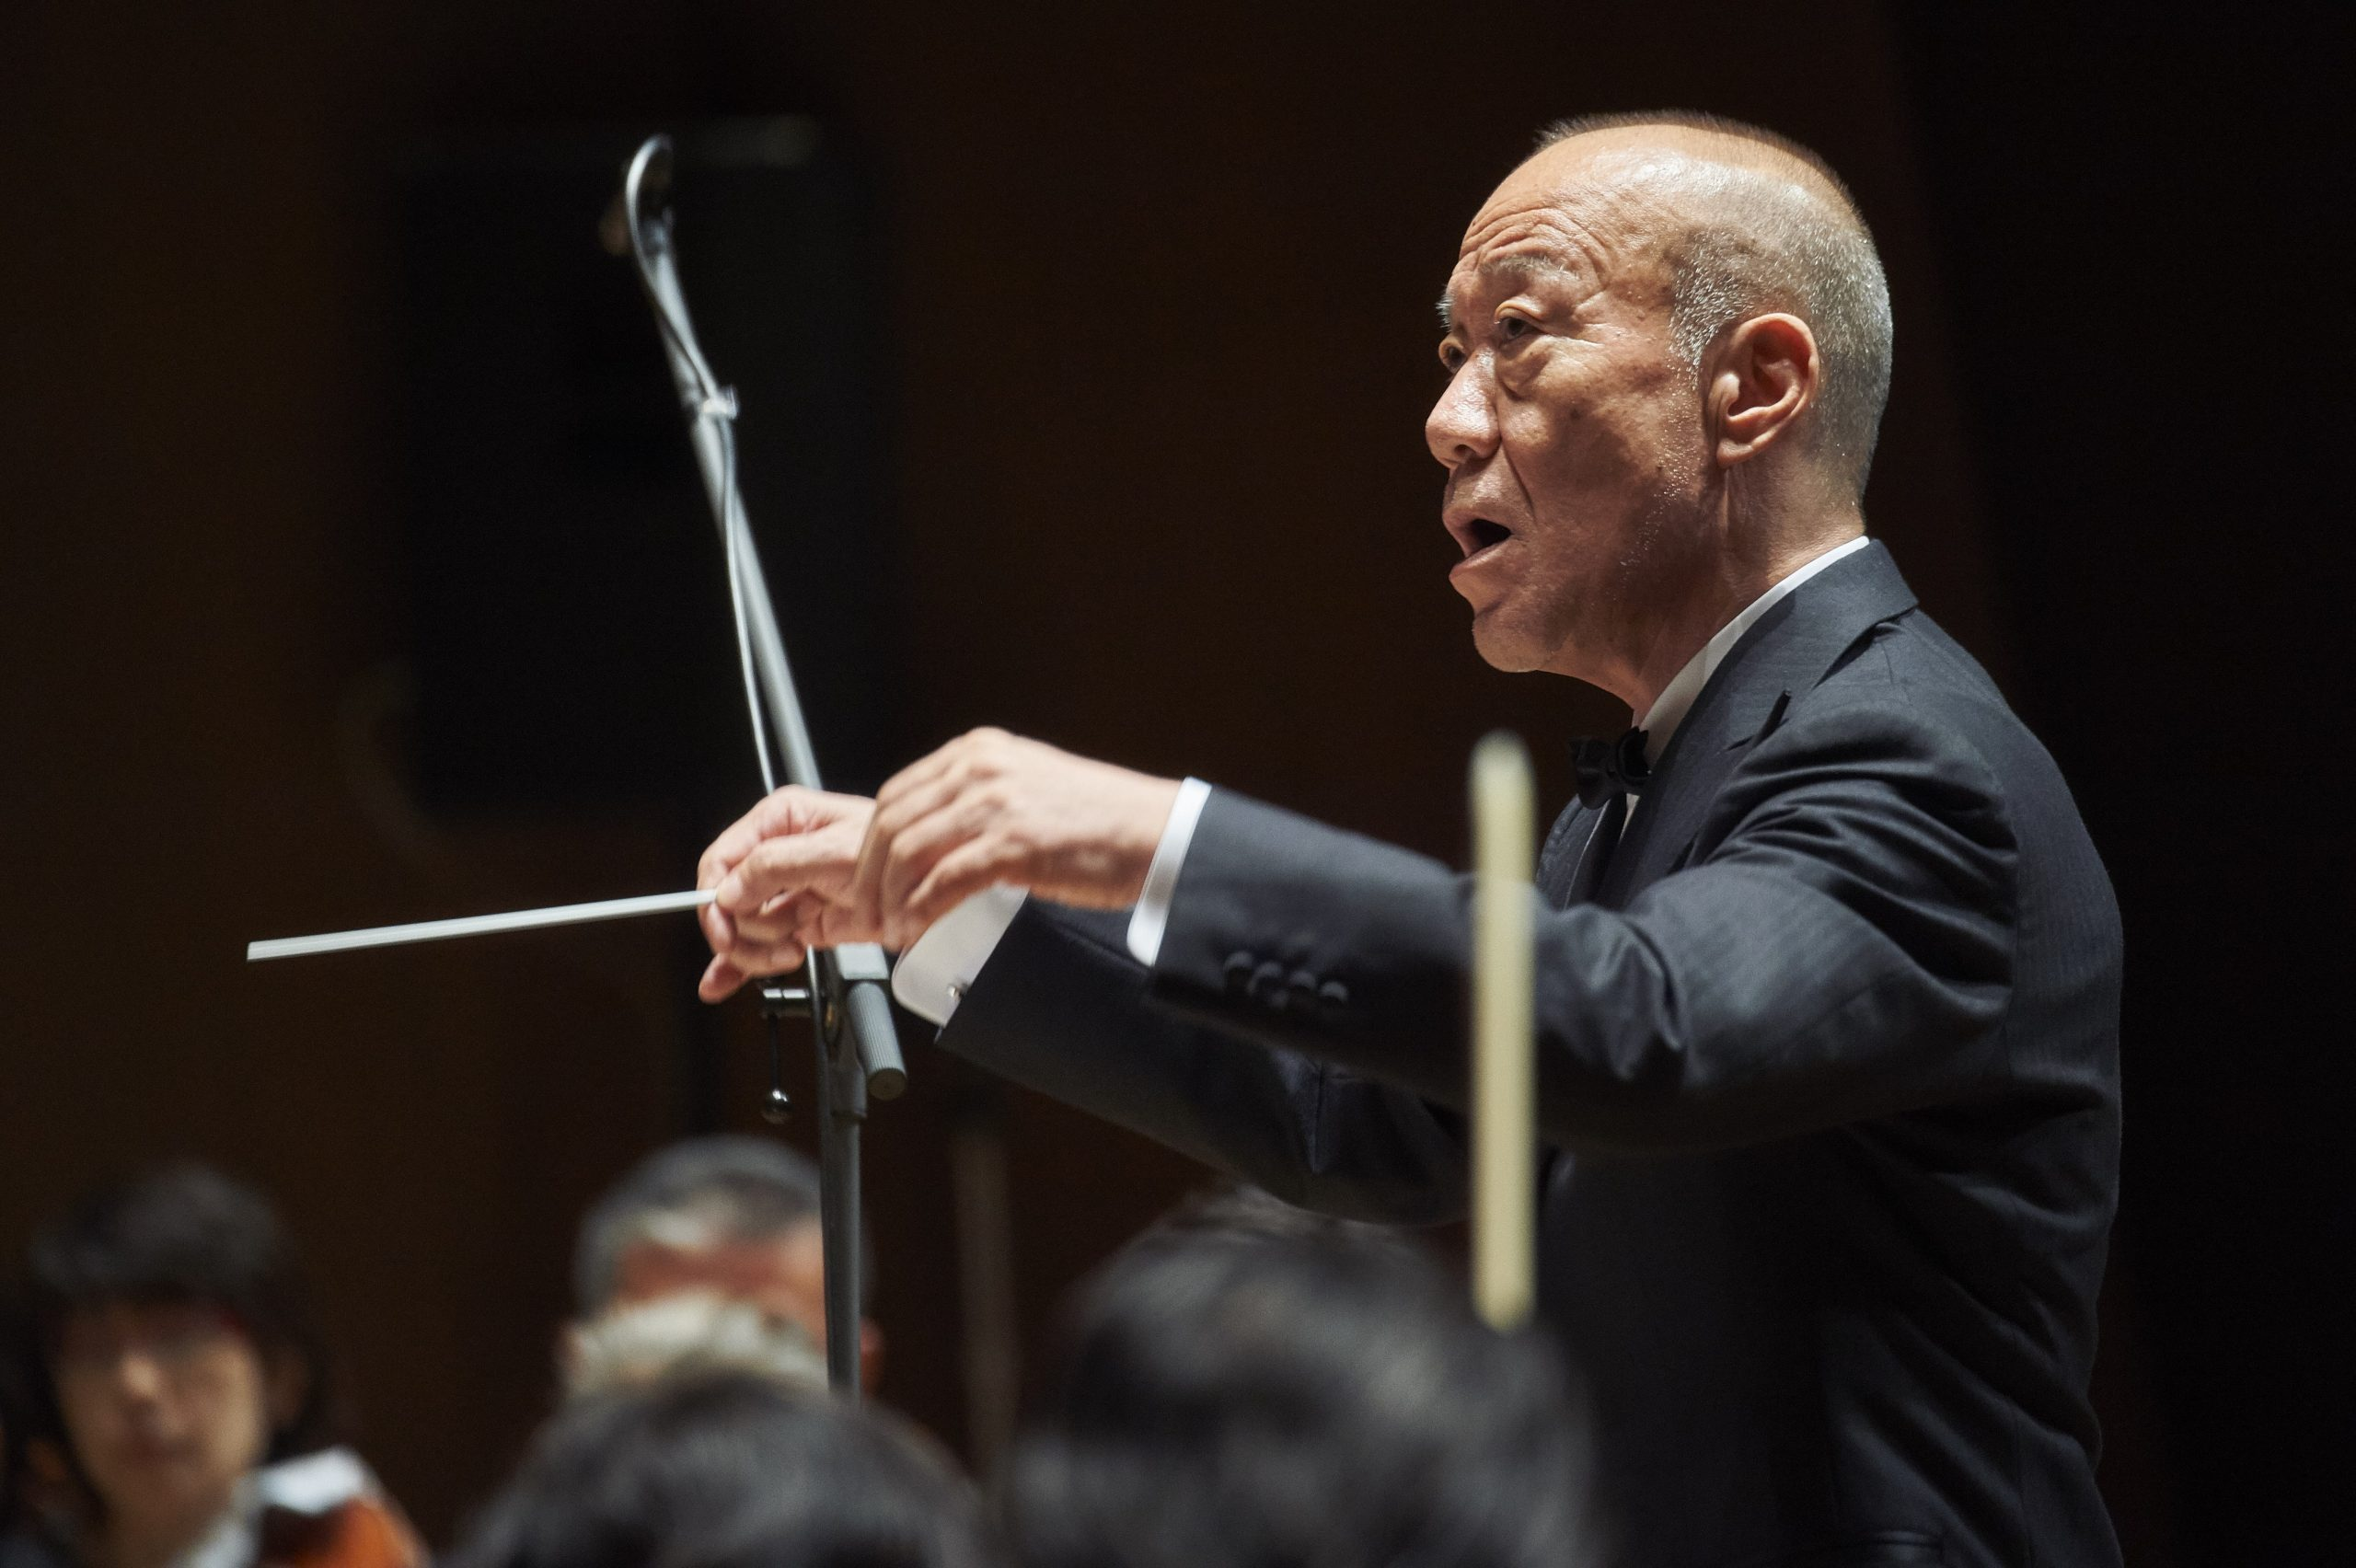 Nippon TV to produce and globally distribute the all-new concert 'Joe Hisaishi & World Dream Orchestra 2021'